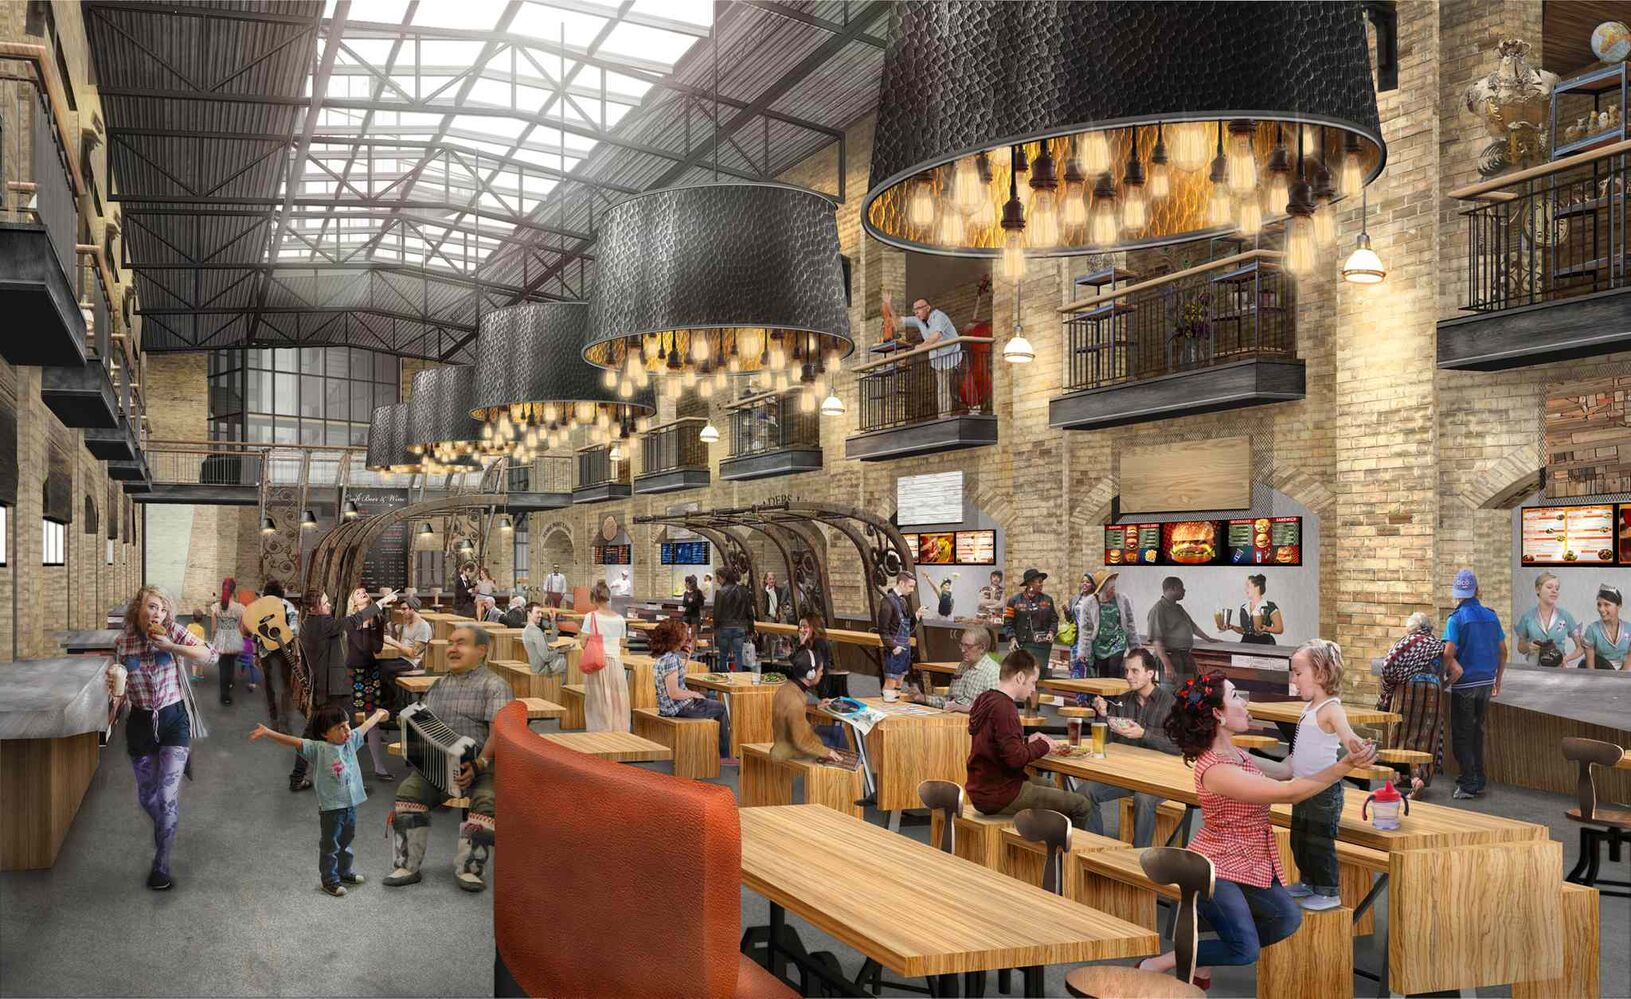 Artist's rendering of the new food court at The Forks. (The Forks)